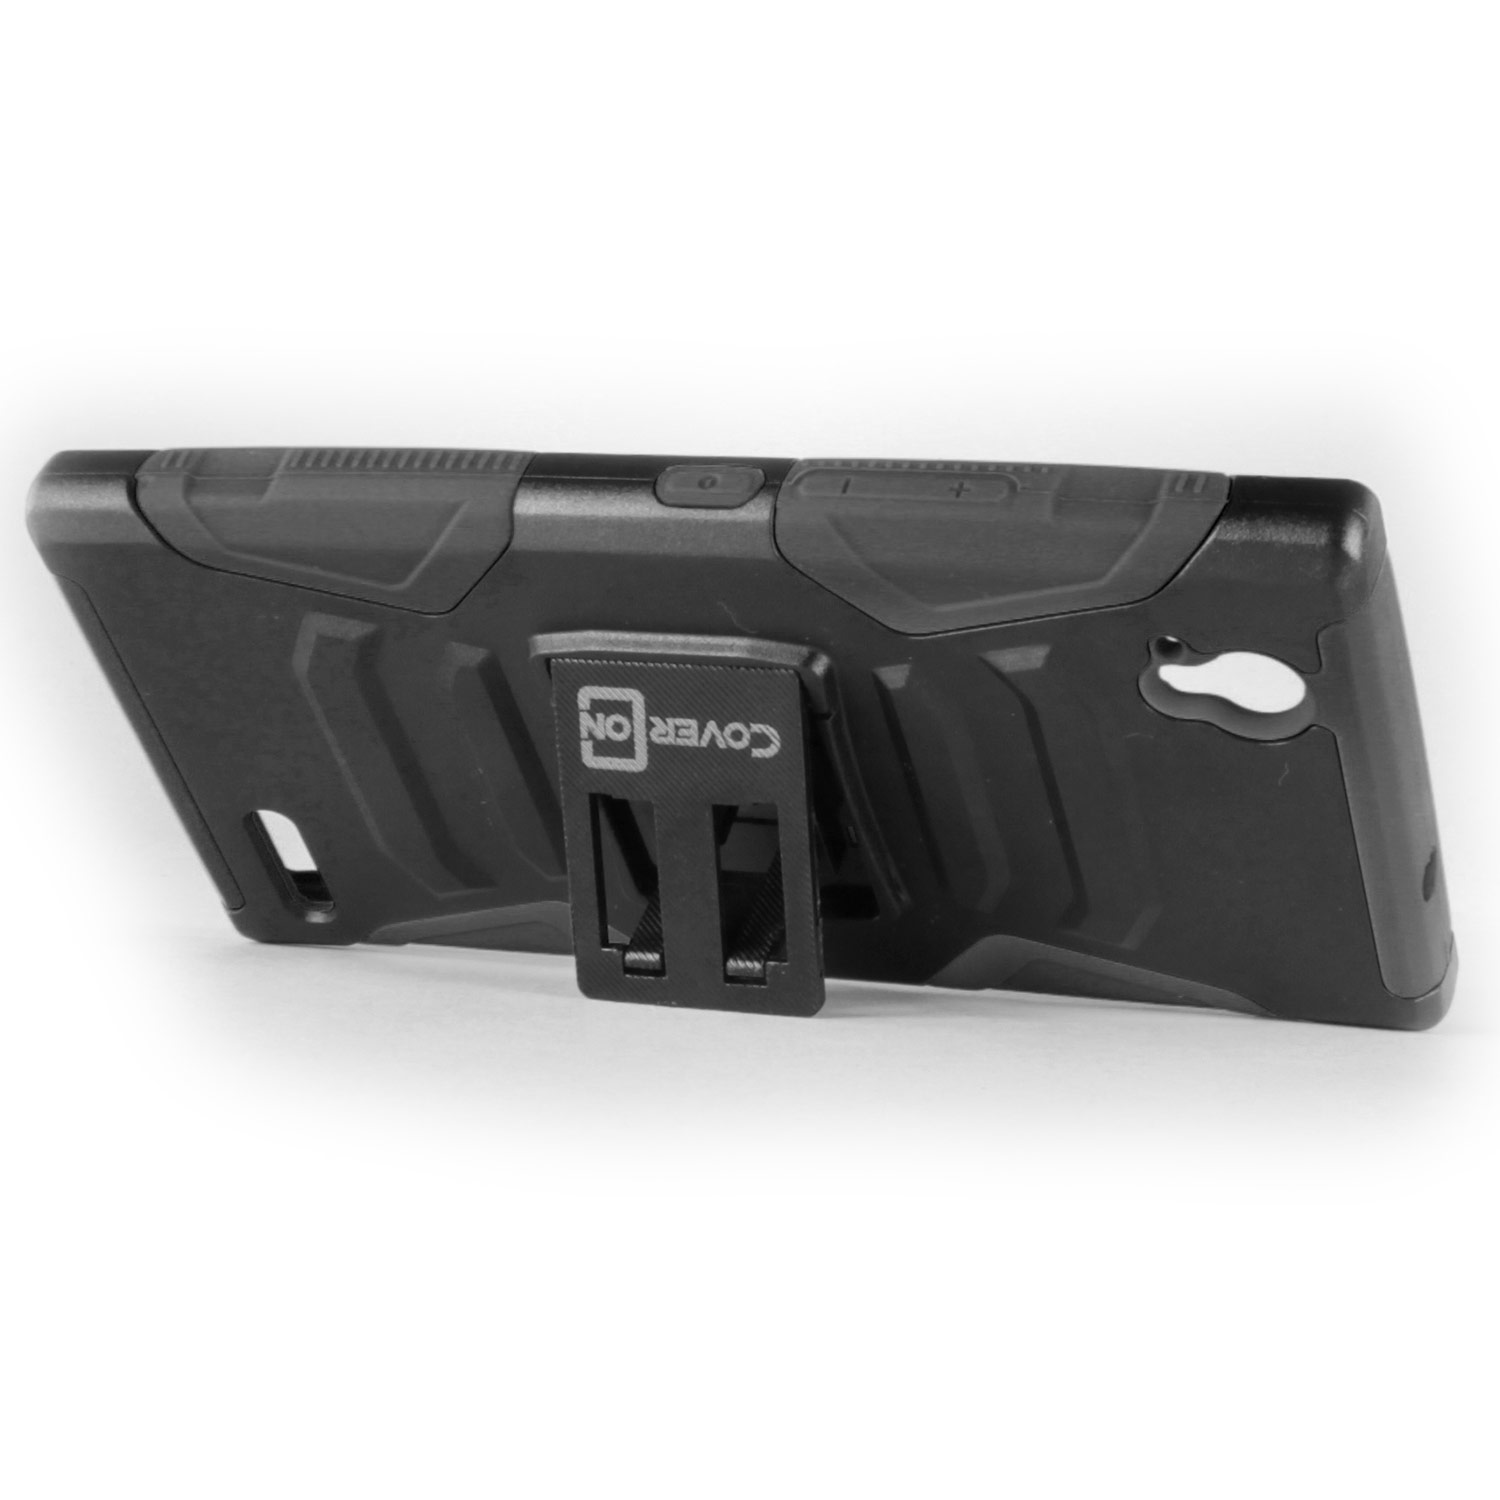 operating zte warp holsters can